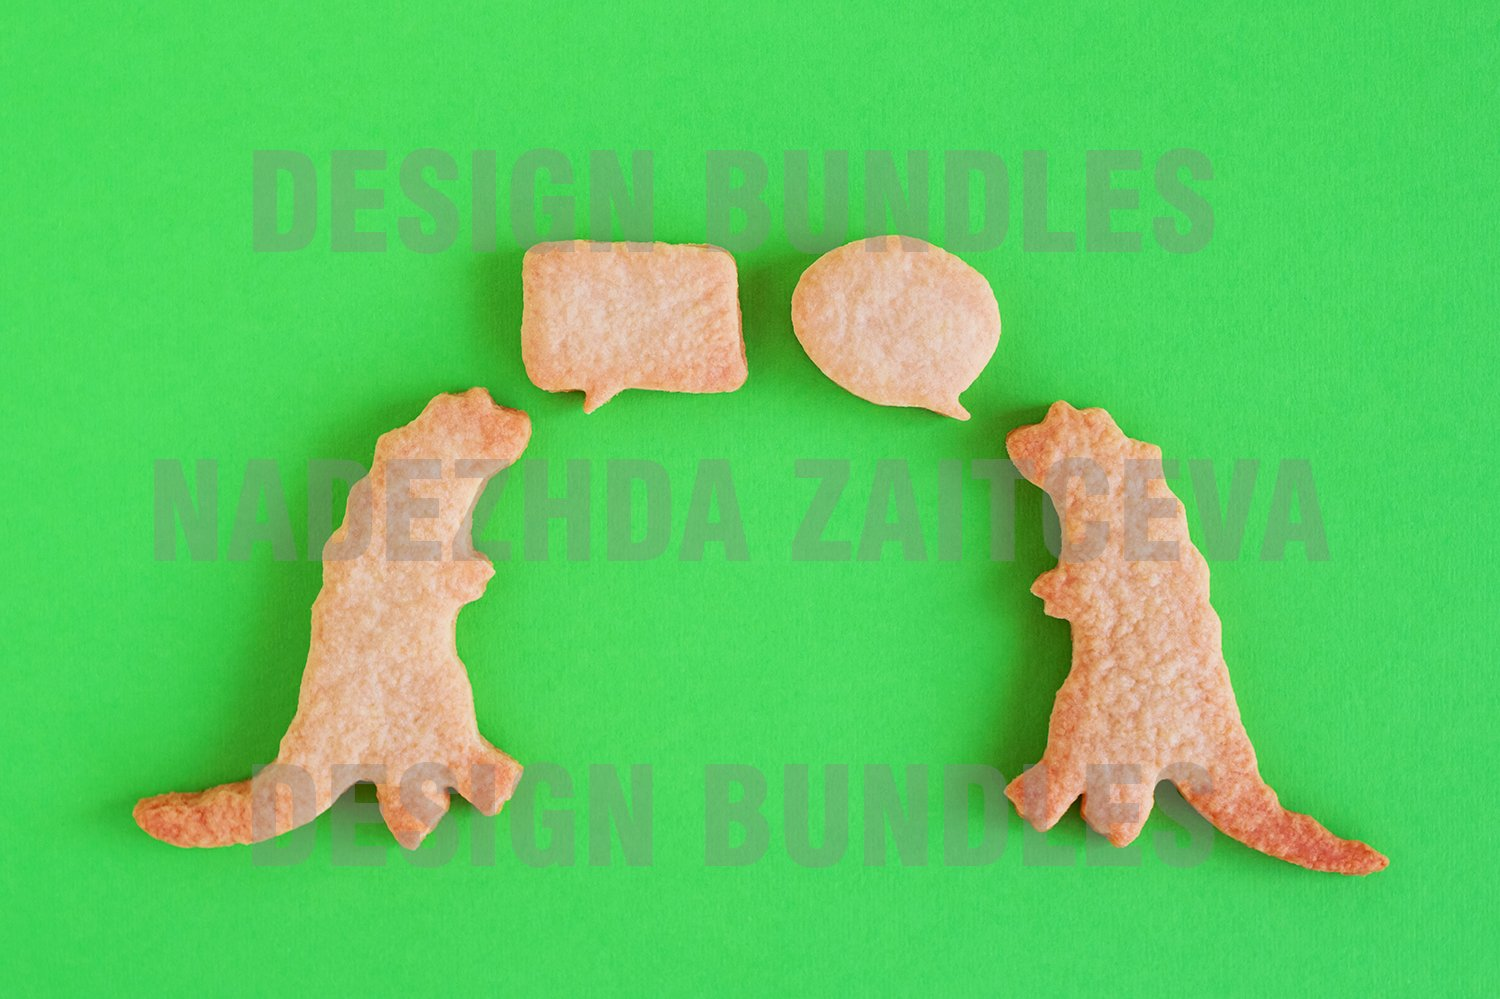 Sweet shortbread with white glaze on green background example image 1